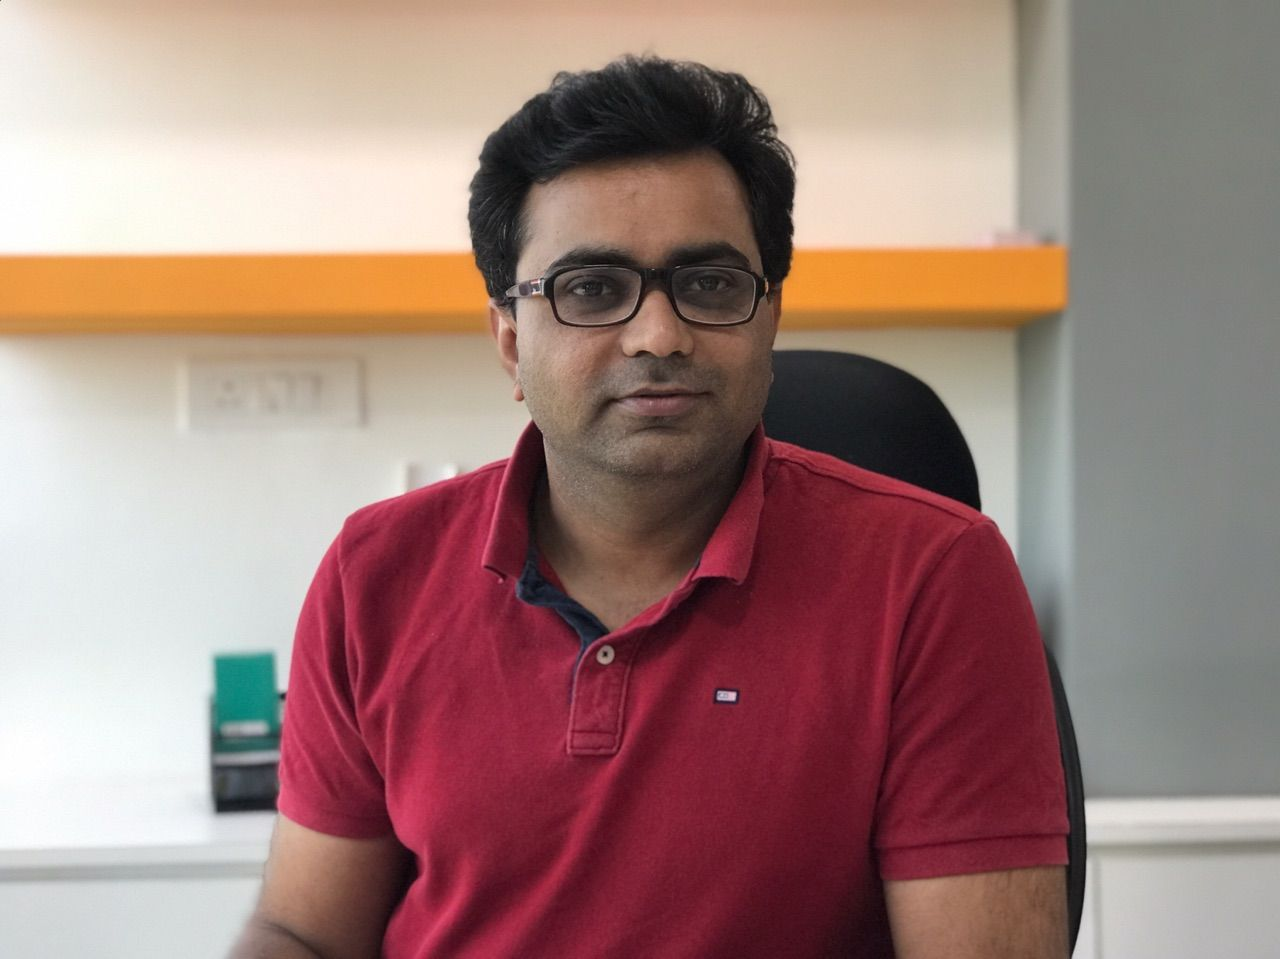 Chandresh Patel Hacker Noon profile picture